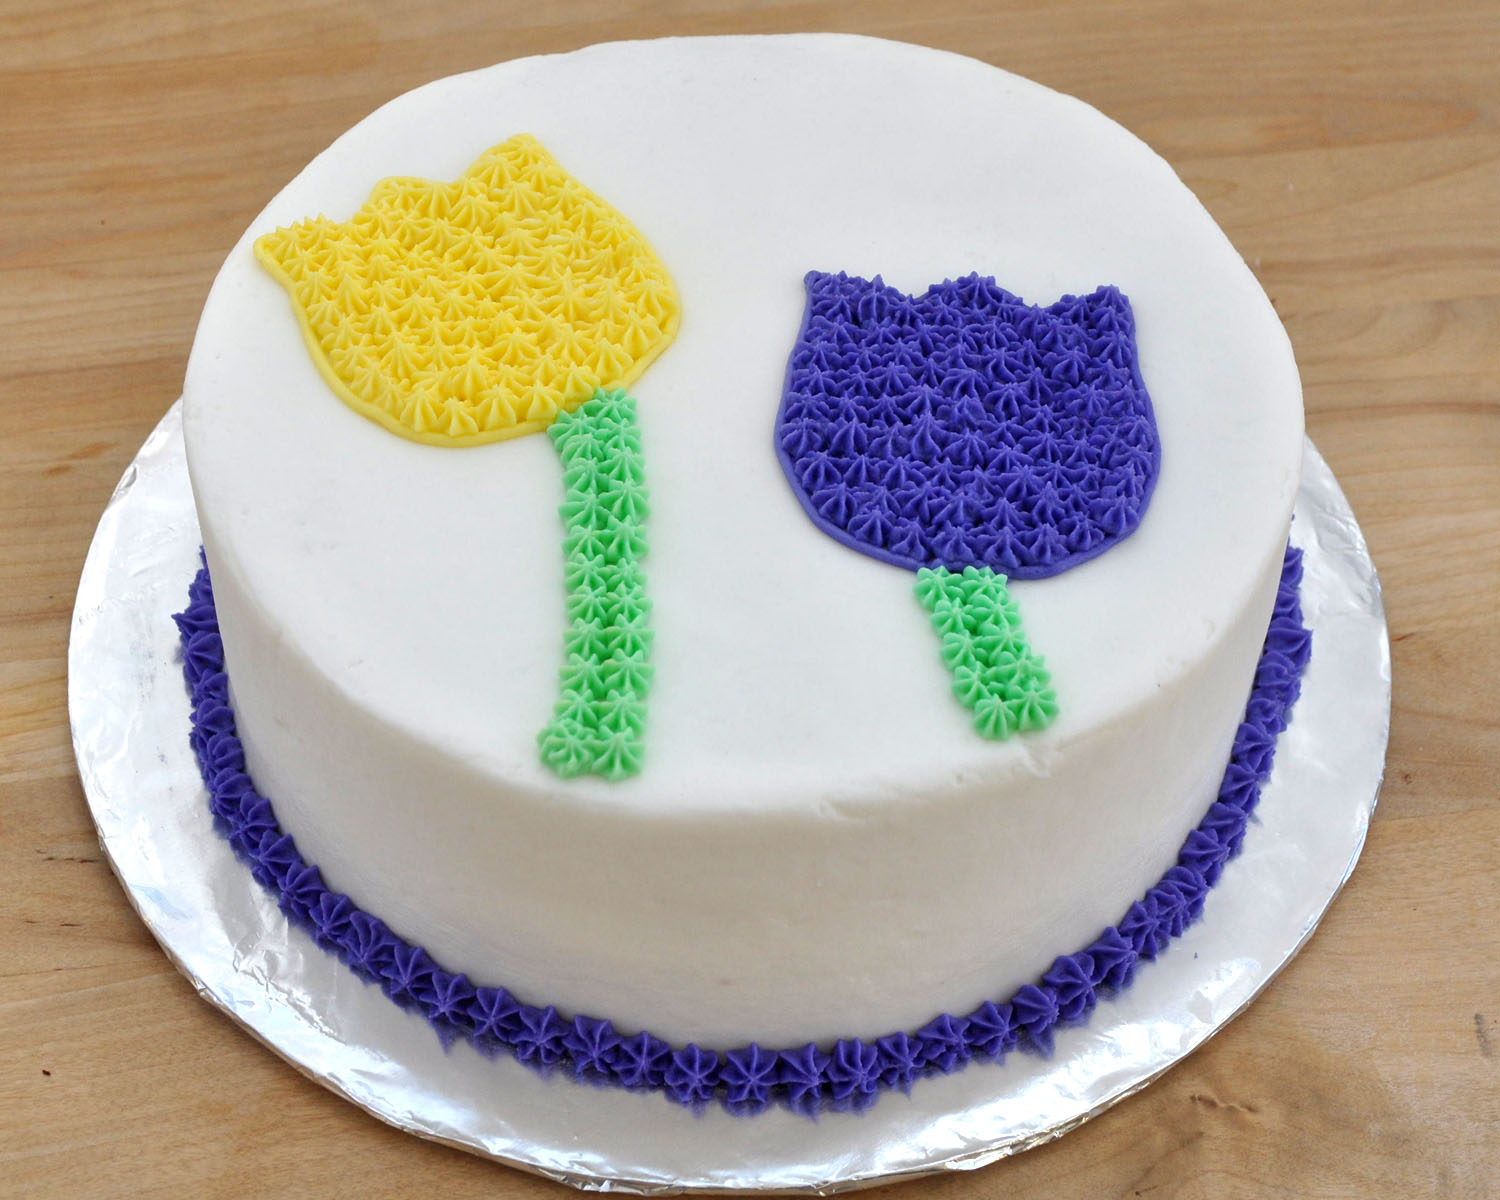 Beki Cook's Cake Blog: Cake Decorating 101 - Easy Birthday ...